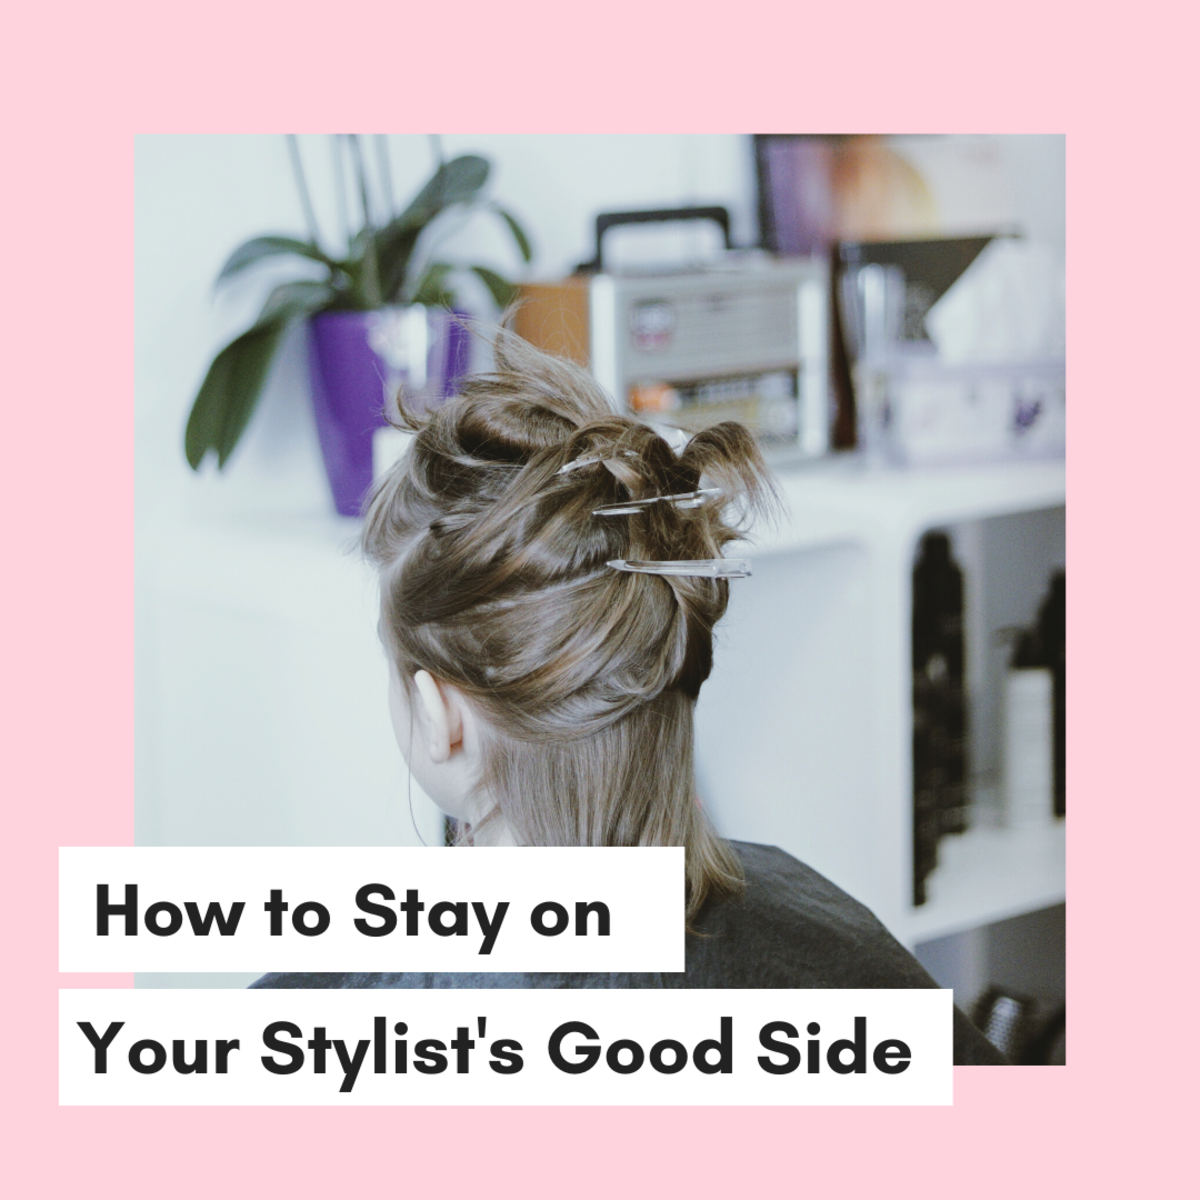 Your barber can wear many hats, however, you don't want to make them mad. After all, they do carry sharp objects around and are in control of your looks. Follow these tips to keep your barber happy!